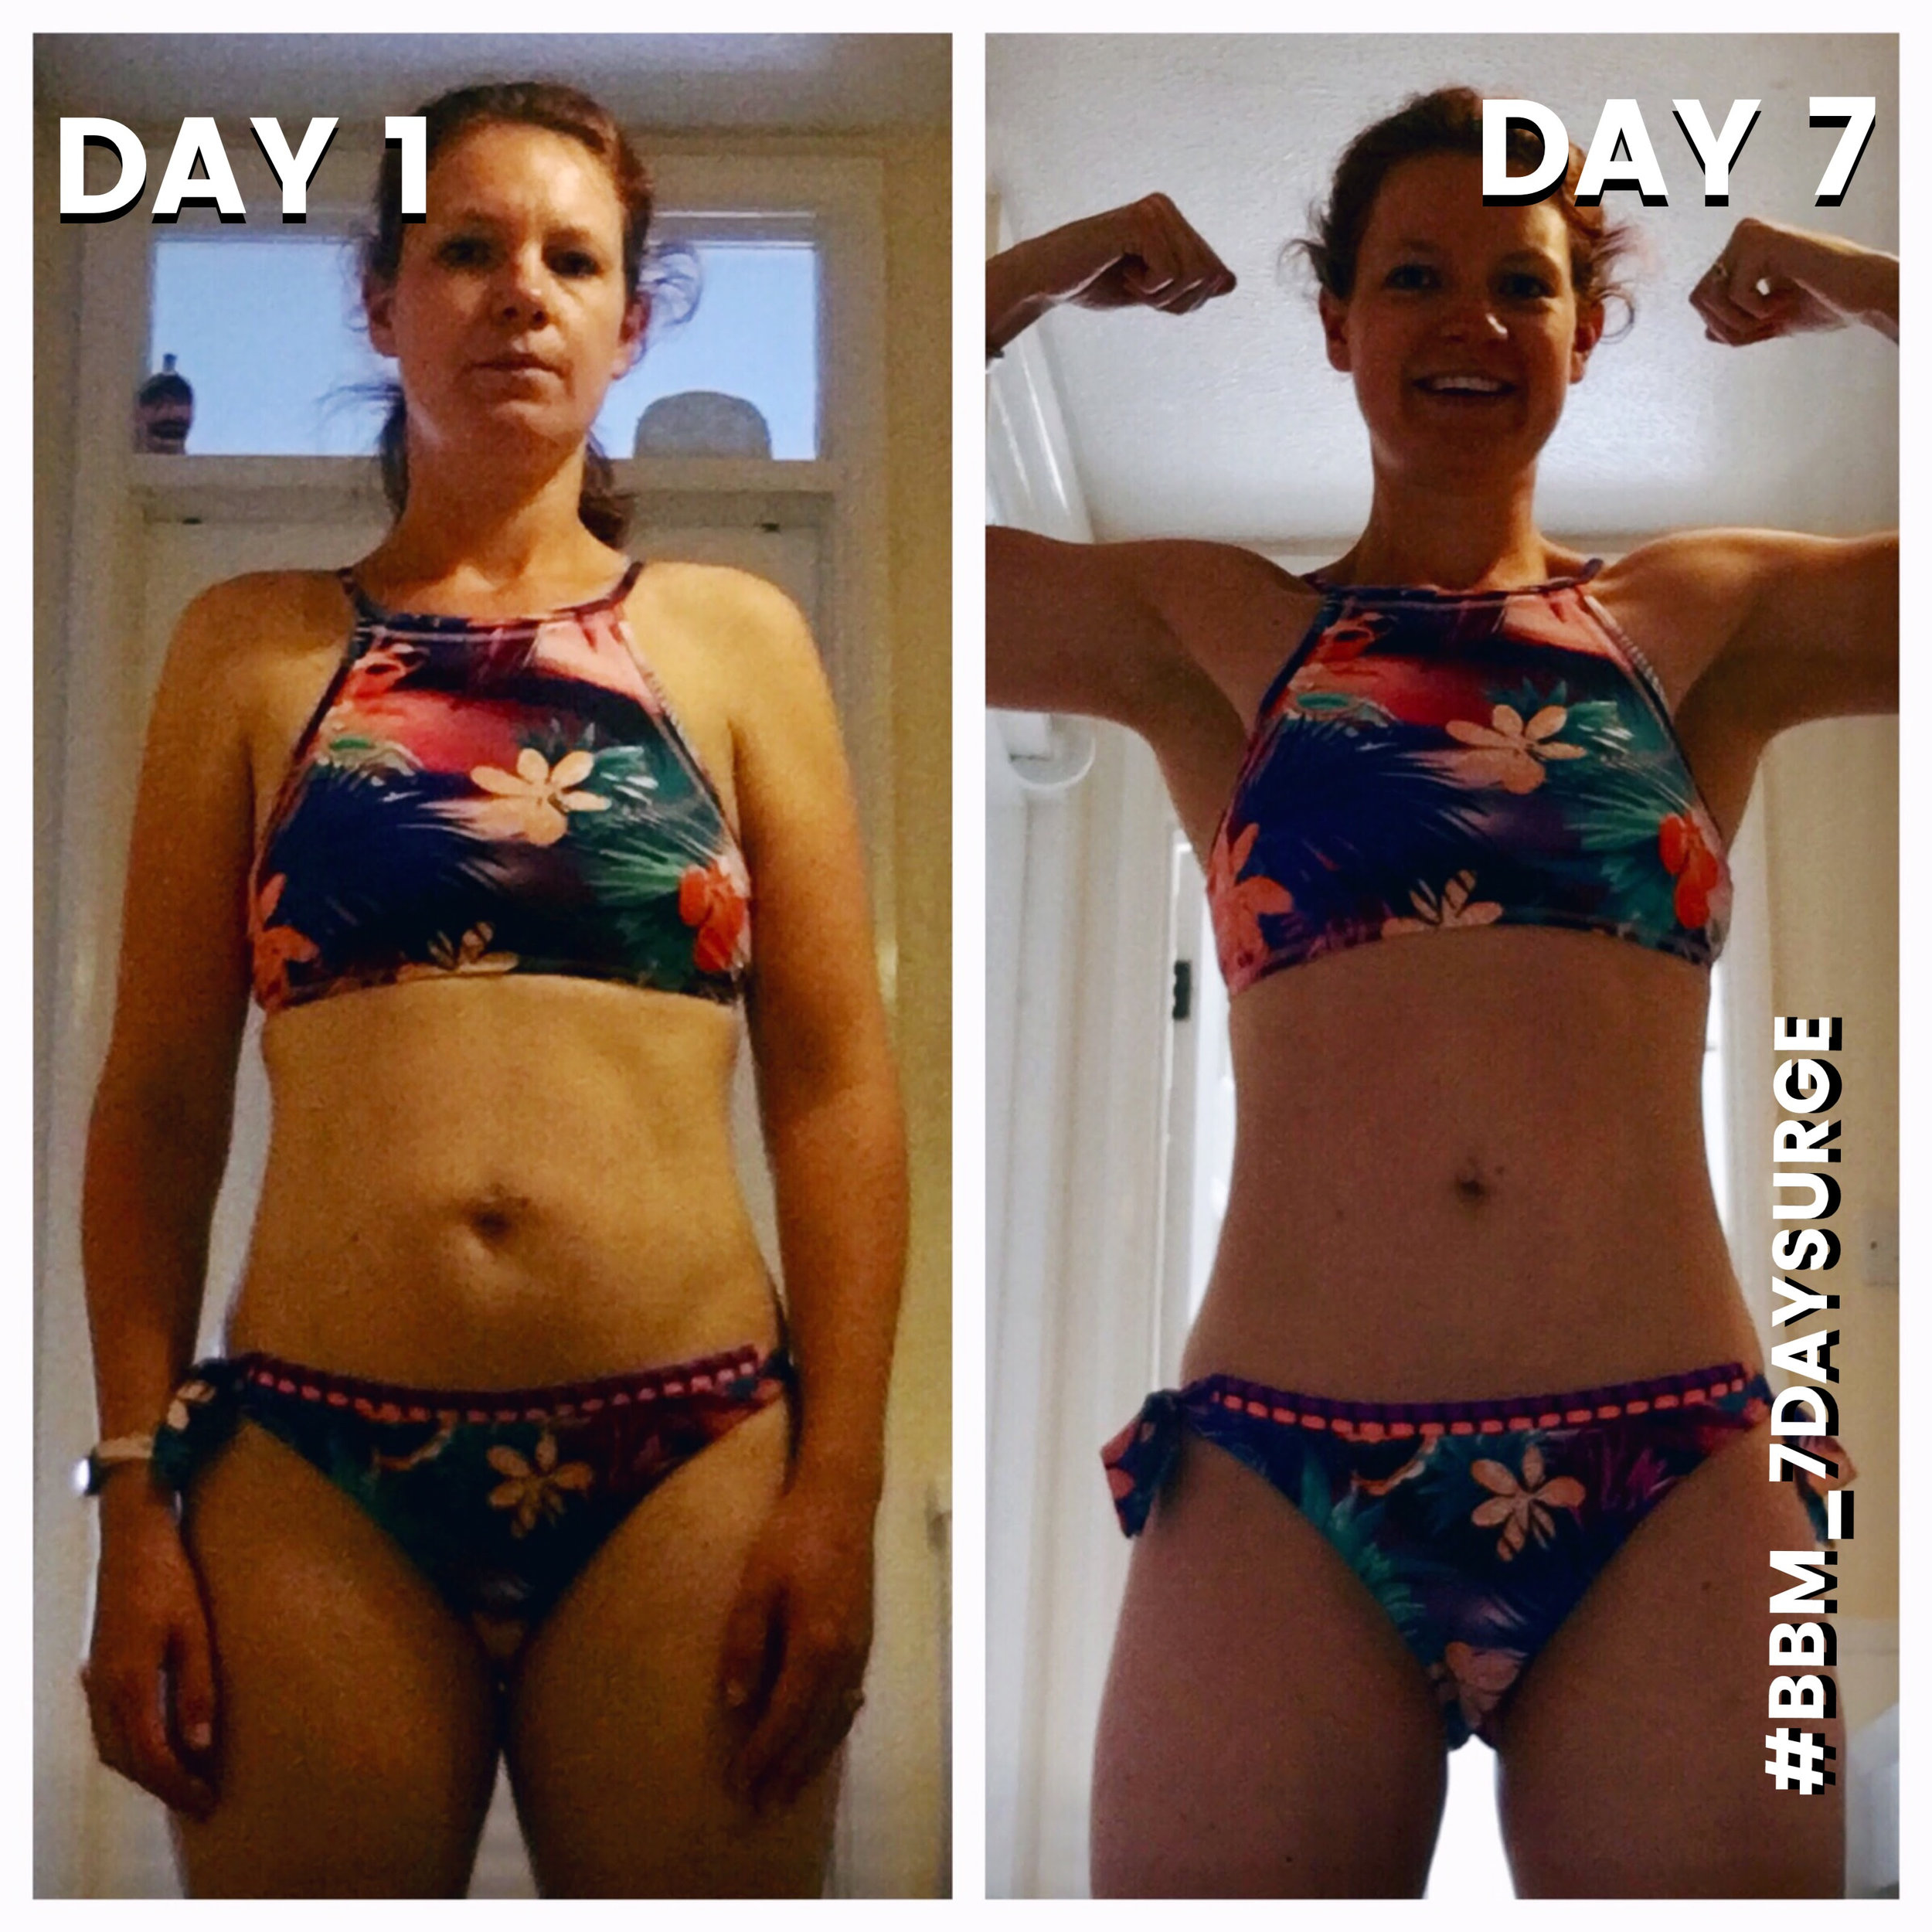 """Katie LOST 8.5 POUNDS on the 7 DAY SURGE!   """"I have been close to my target weight for months now but keep fluctuating up and down and never manage to lose those last few pounds. This is my first surge and it was just the boost I needed as this morning (Day 8) I weighed in at my target for the first time since I met my husband. I'm off on a beach holiday this weekend and actually feel proud of how I look in a bikini (well at 35 anyway). My husband has been doing the surge with me and having him as extra accountability was priceless. The first few days of the meal plan were tough but we made it through the fog and came out the other wise with a better understanding of our cravings and bad snack choices. Especially the """"I'm bored"""" relentlessly munching on goodies. Thank you to Briana and everyone at BBM for all your help and inspiration x """""""